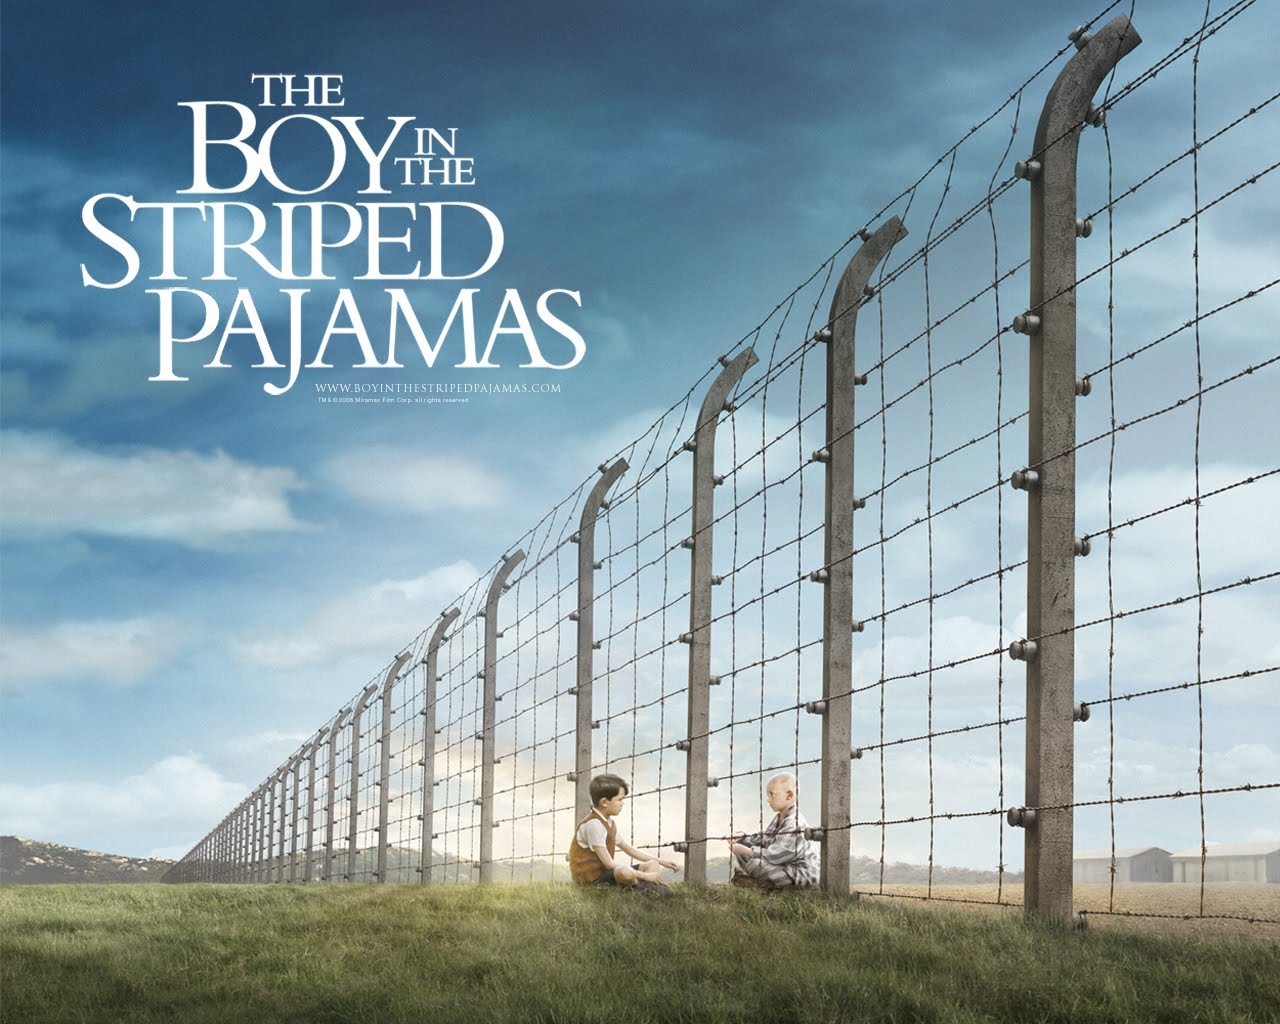 http://2.bp.blogspot.com/-eXvQlxfKLws/Tco67aLknQI/AAAAAAAASE4/-9WmuA38nc8/s1600/Asa_Butterfield_in_The_Boy_in_the_Striped_Pyjamas_Wallpaper_1_800.jpg